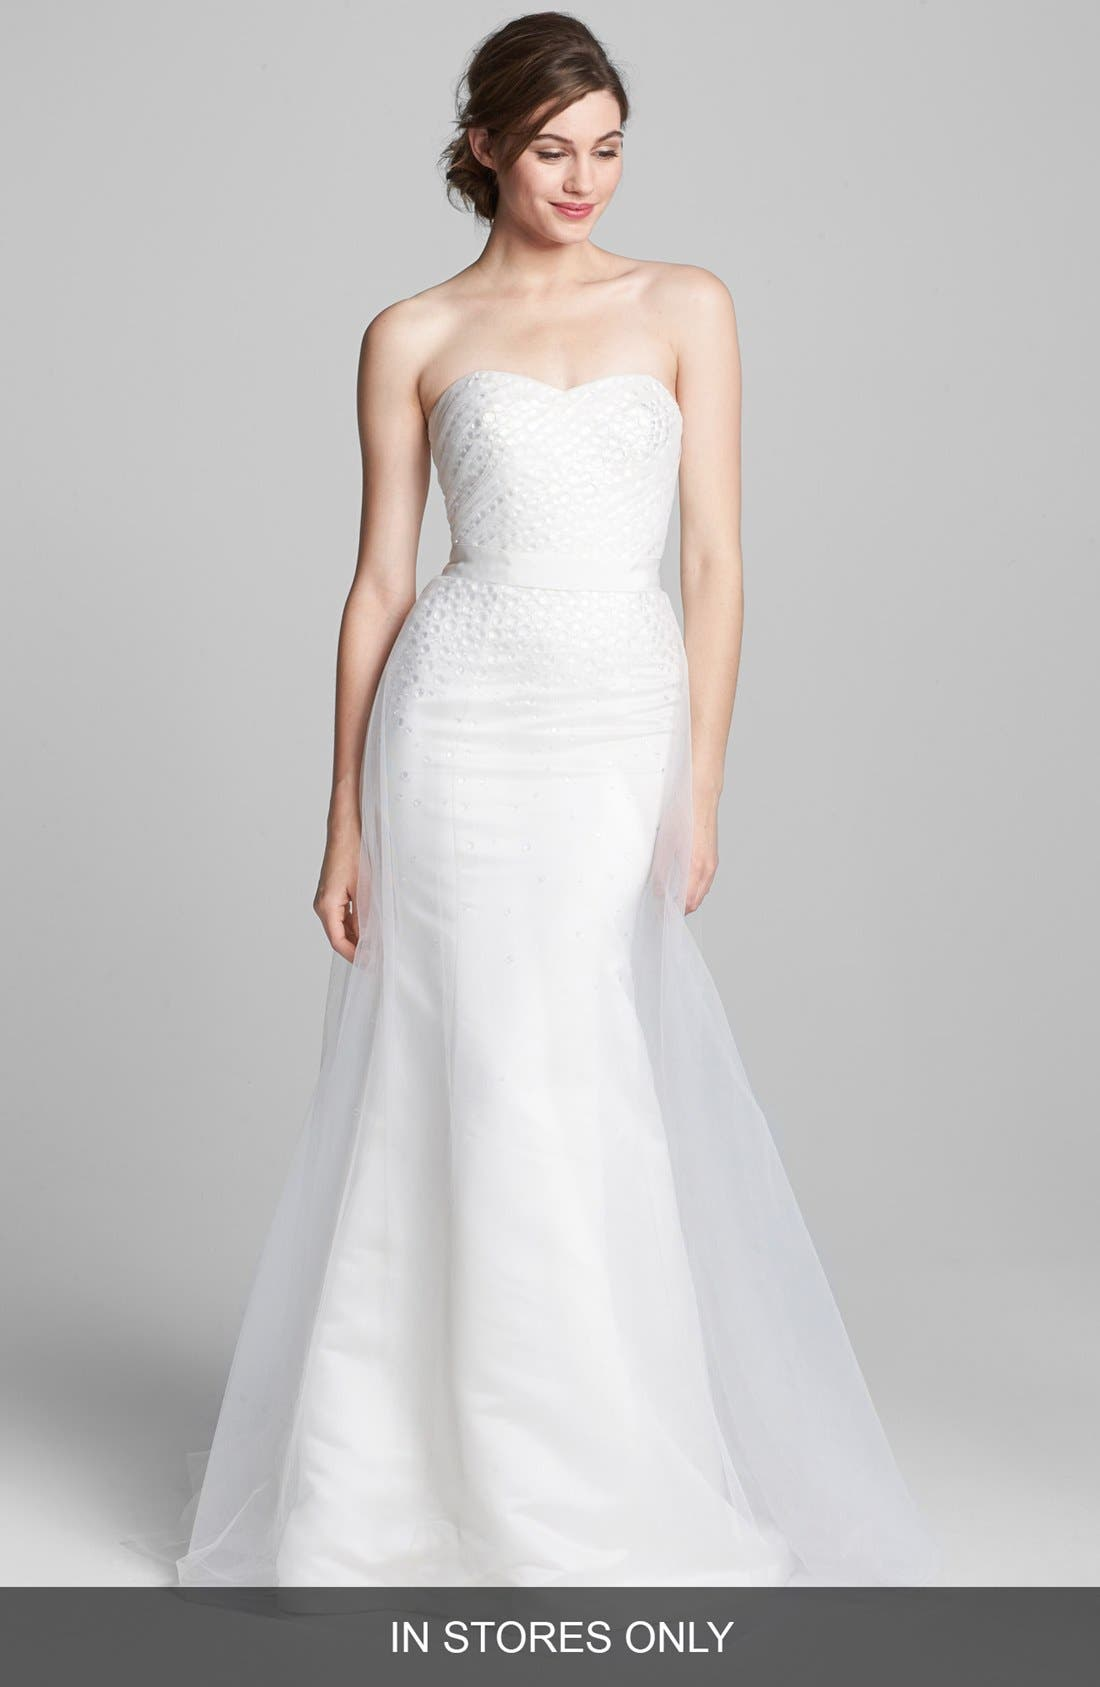 Main Image - Kelly Faetanini 'Becky' Embellished Tulle Overlay Satin Gown (In Stores Only)